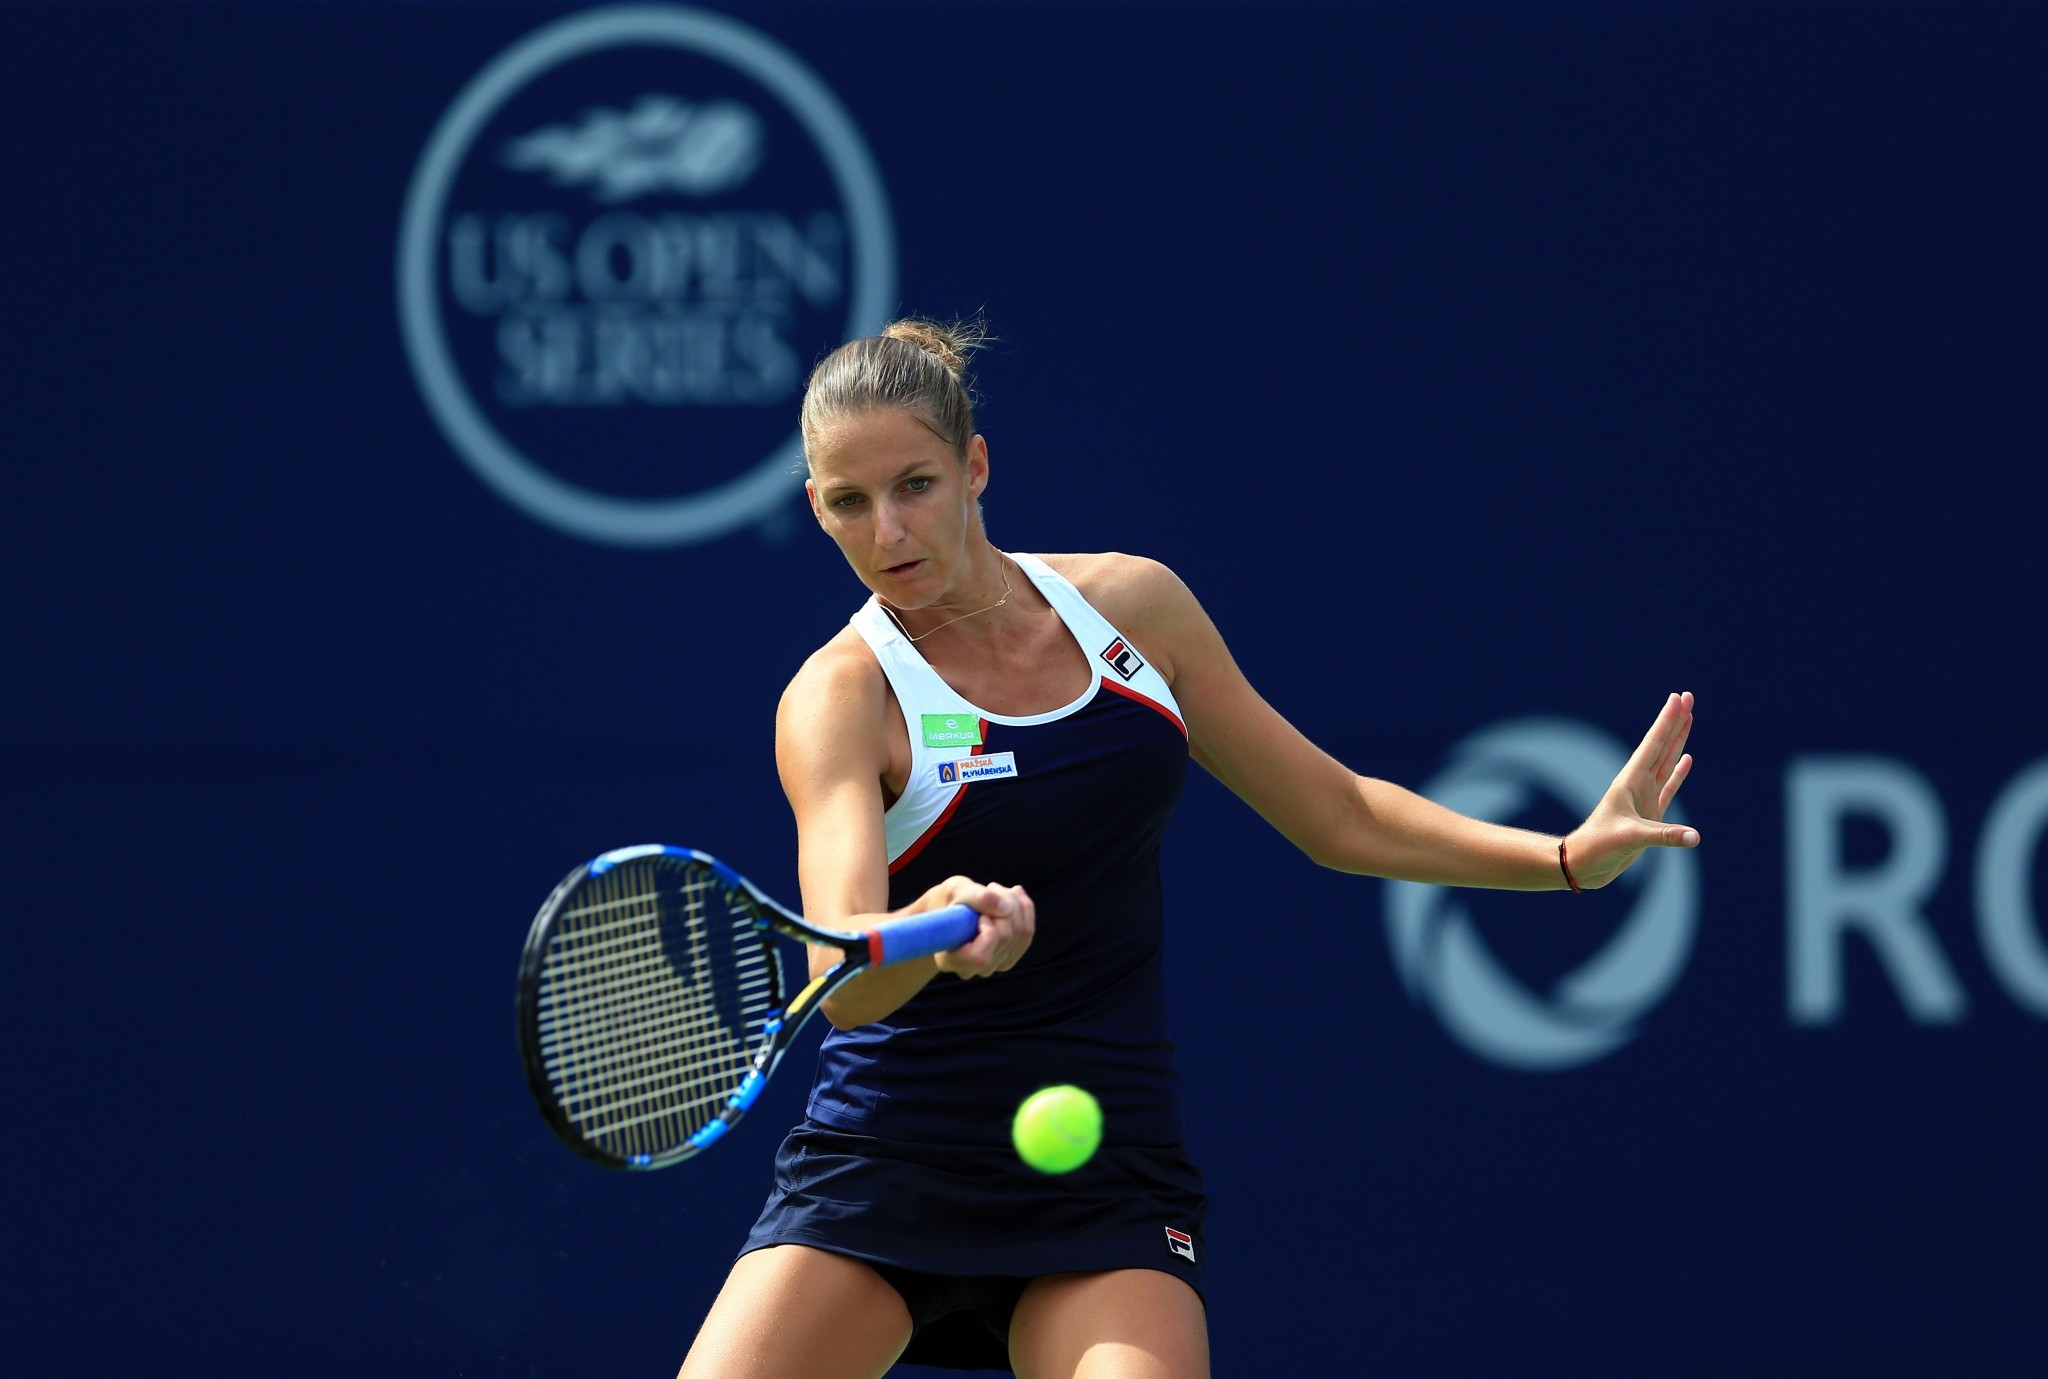 World number one Karolina Pliskova is through to the quarter-finals of the women's event in Toronto